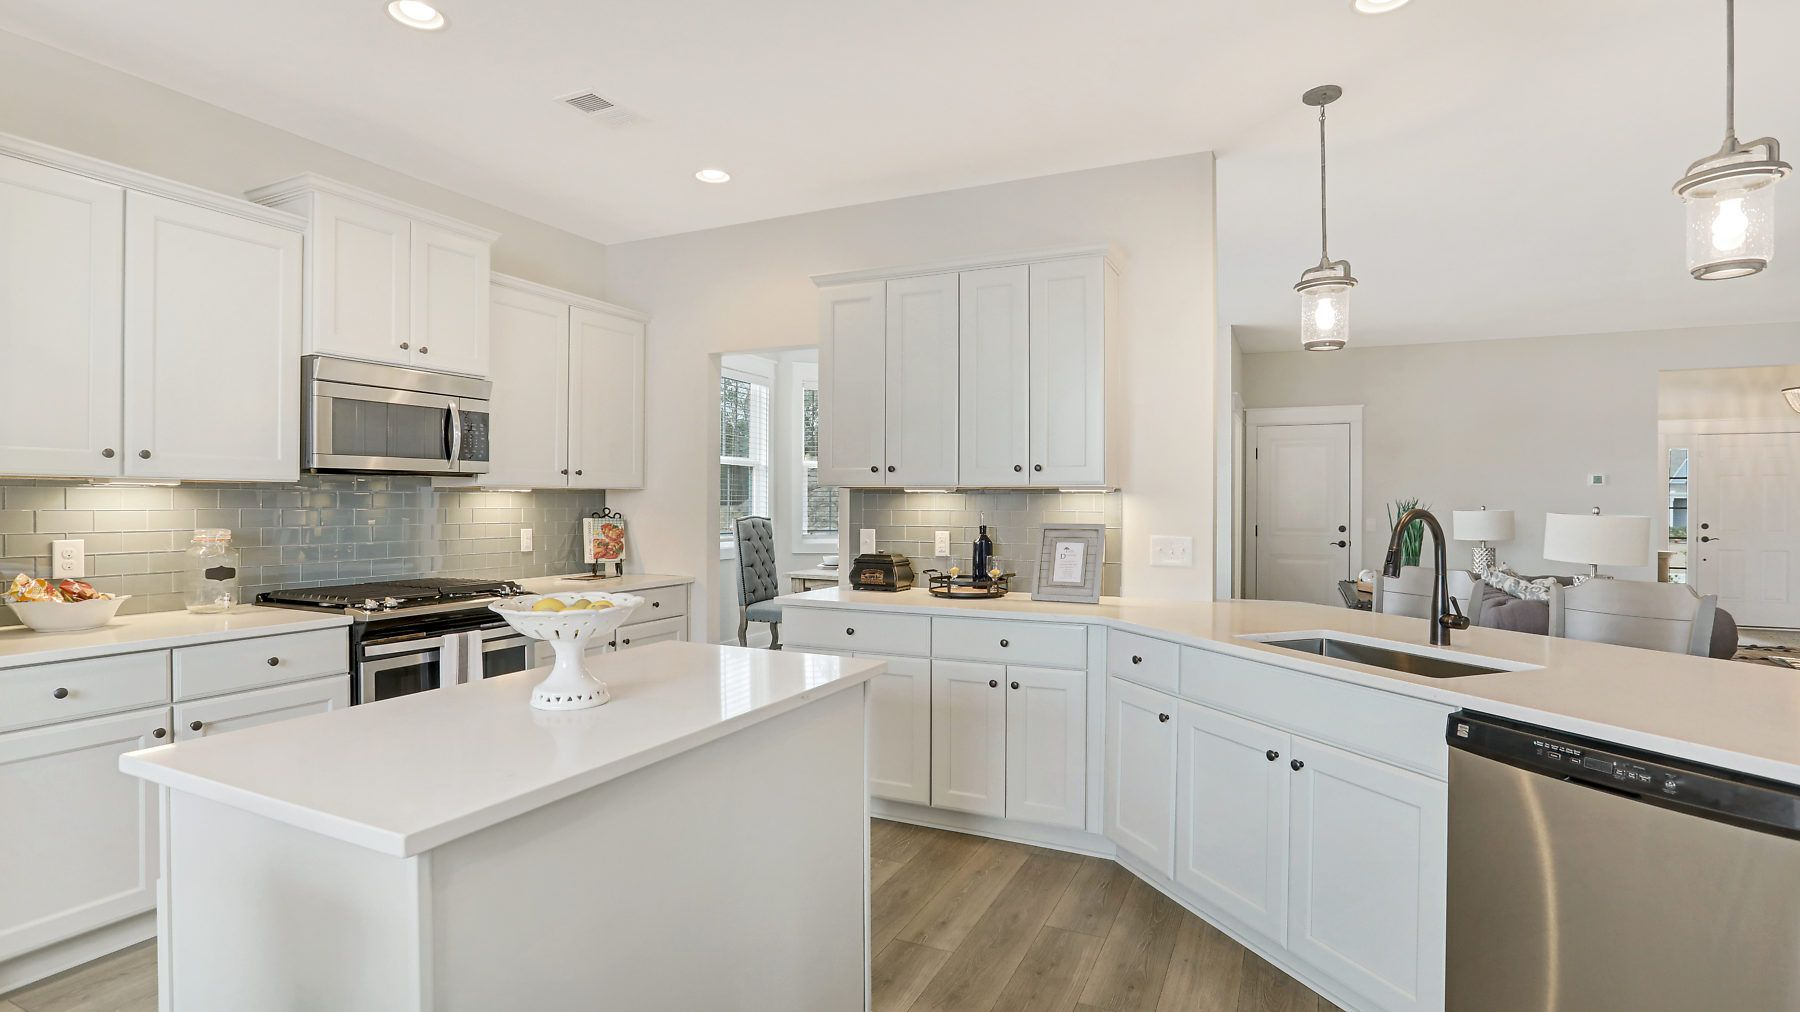 Kitchen featured in The Tillery By Village Park Homes in Hilton Head, SC